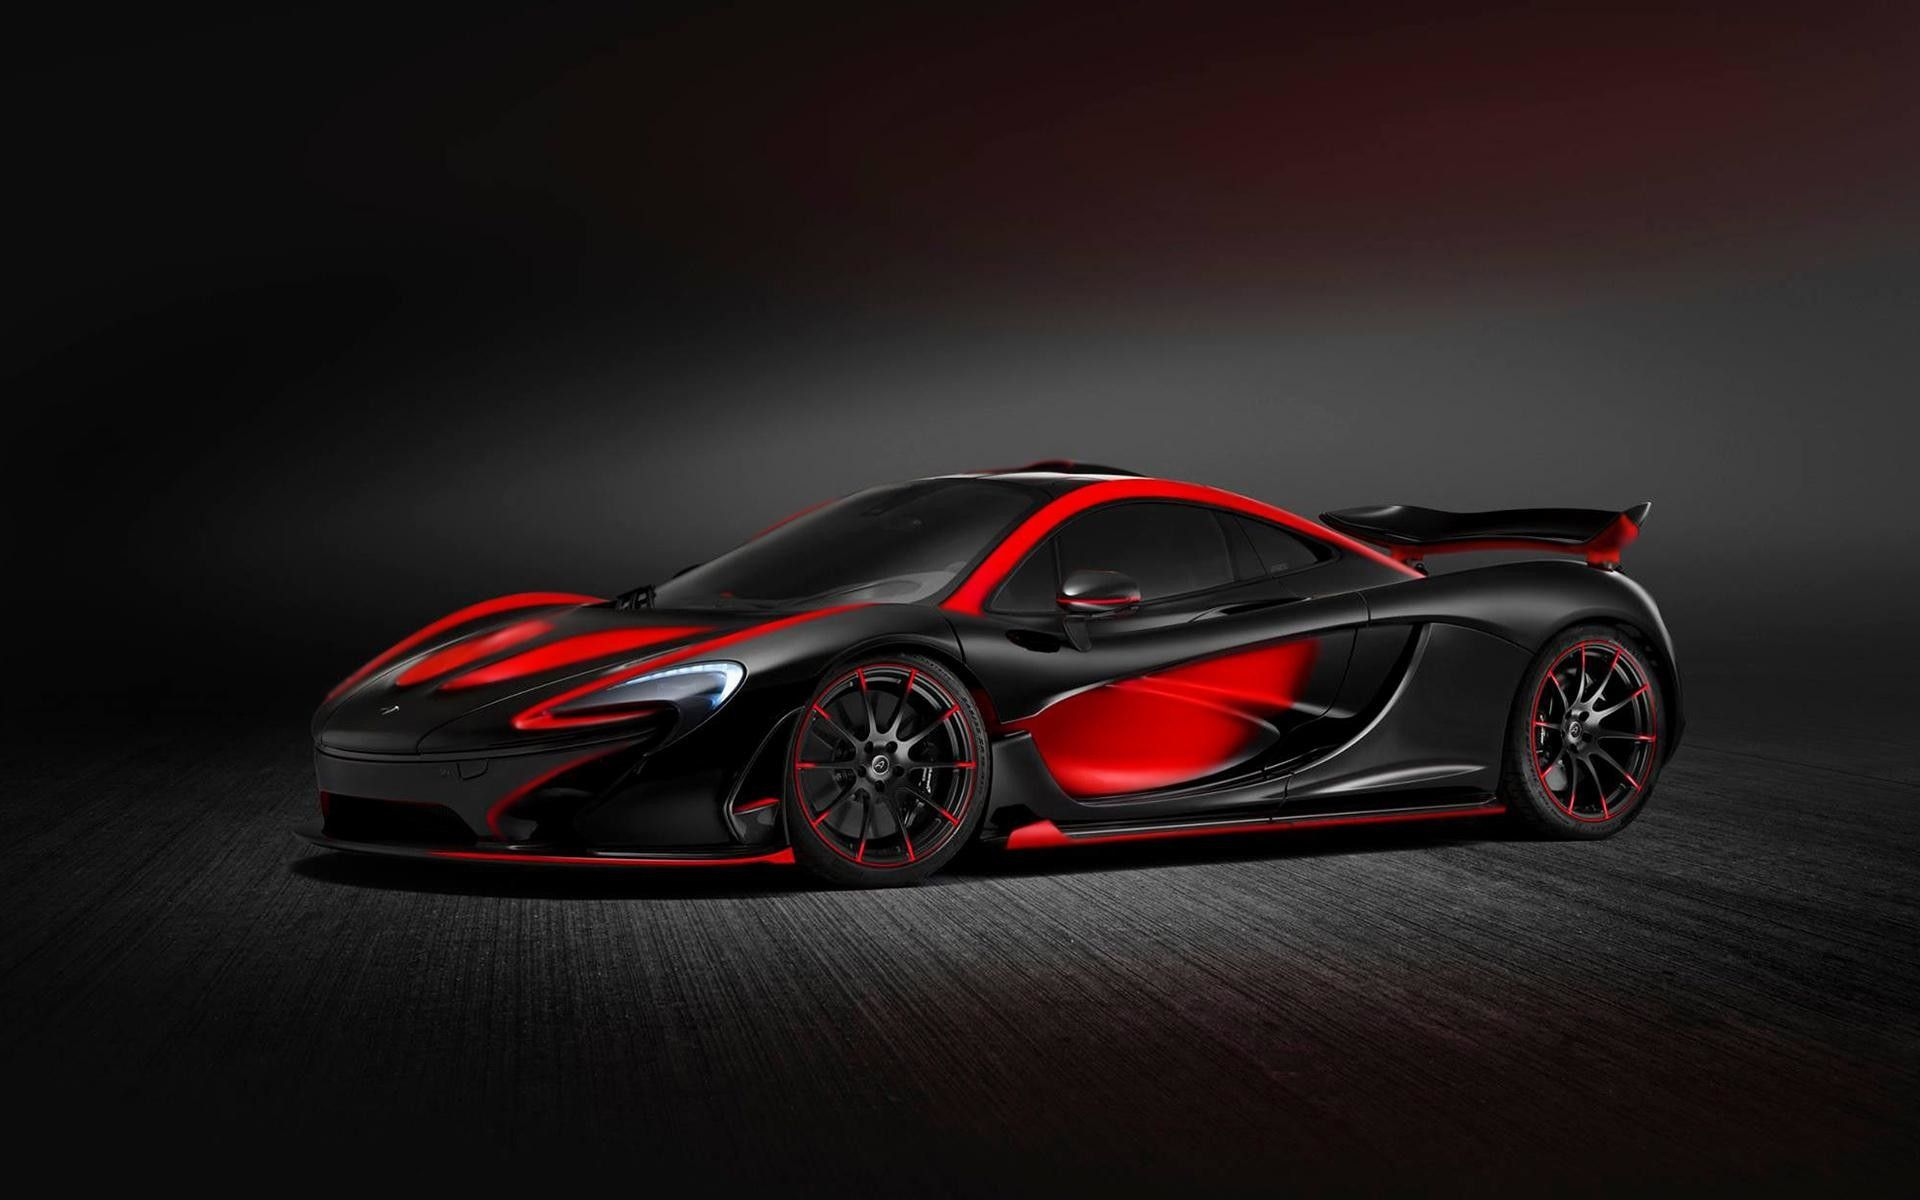 1920x1200 Black And Red Hd Photo Mclaren P1 Red And Black Wallpaper Sports Car